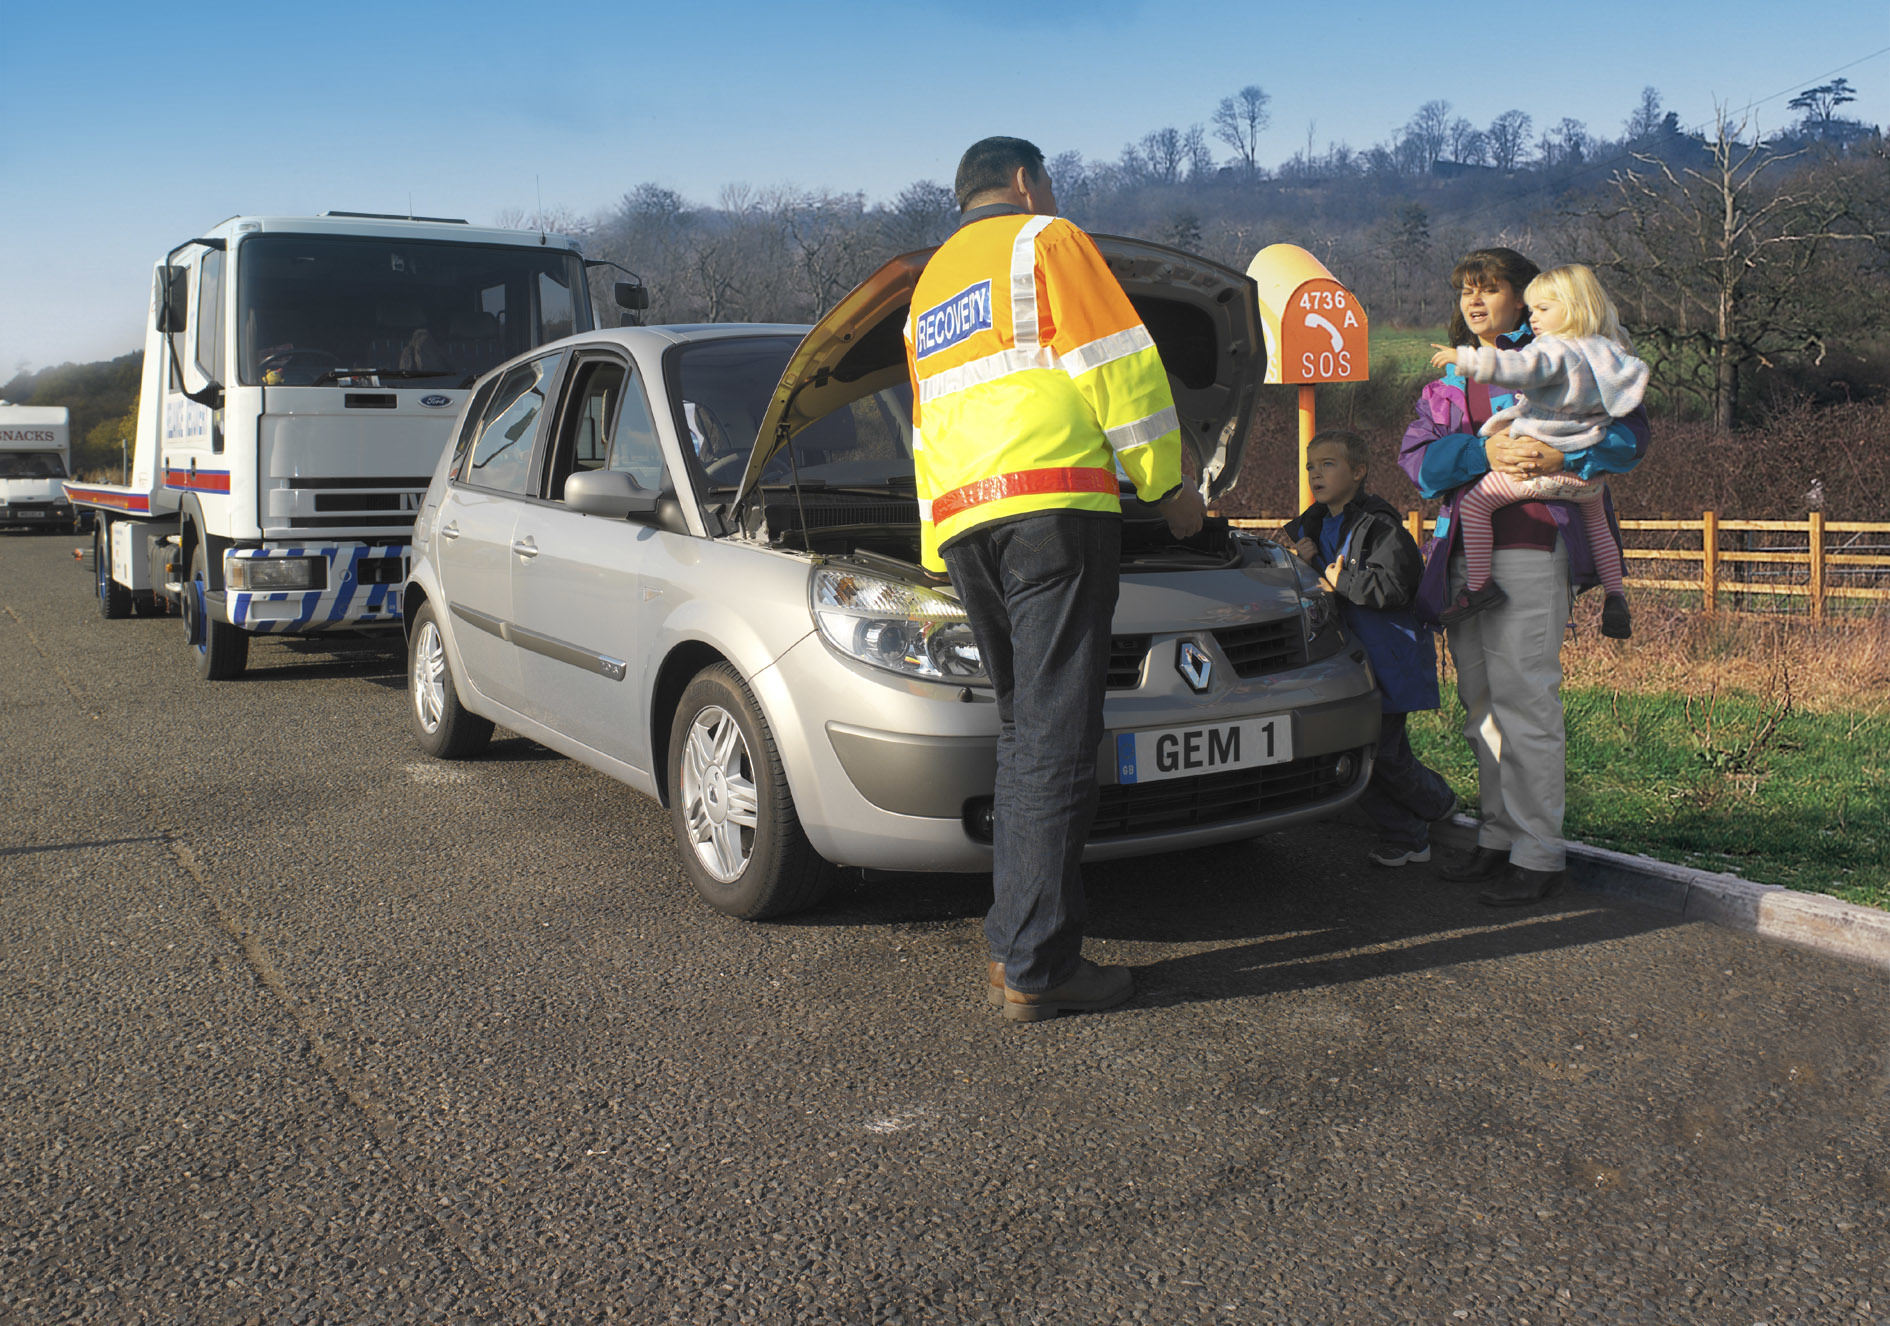 image of a car broken down being attended to by emergency breakdown services